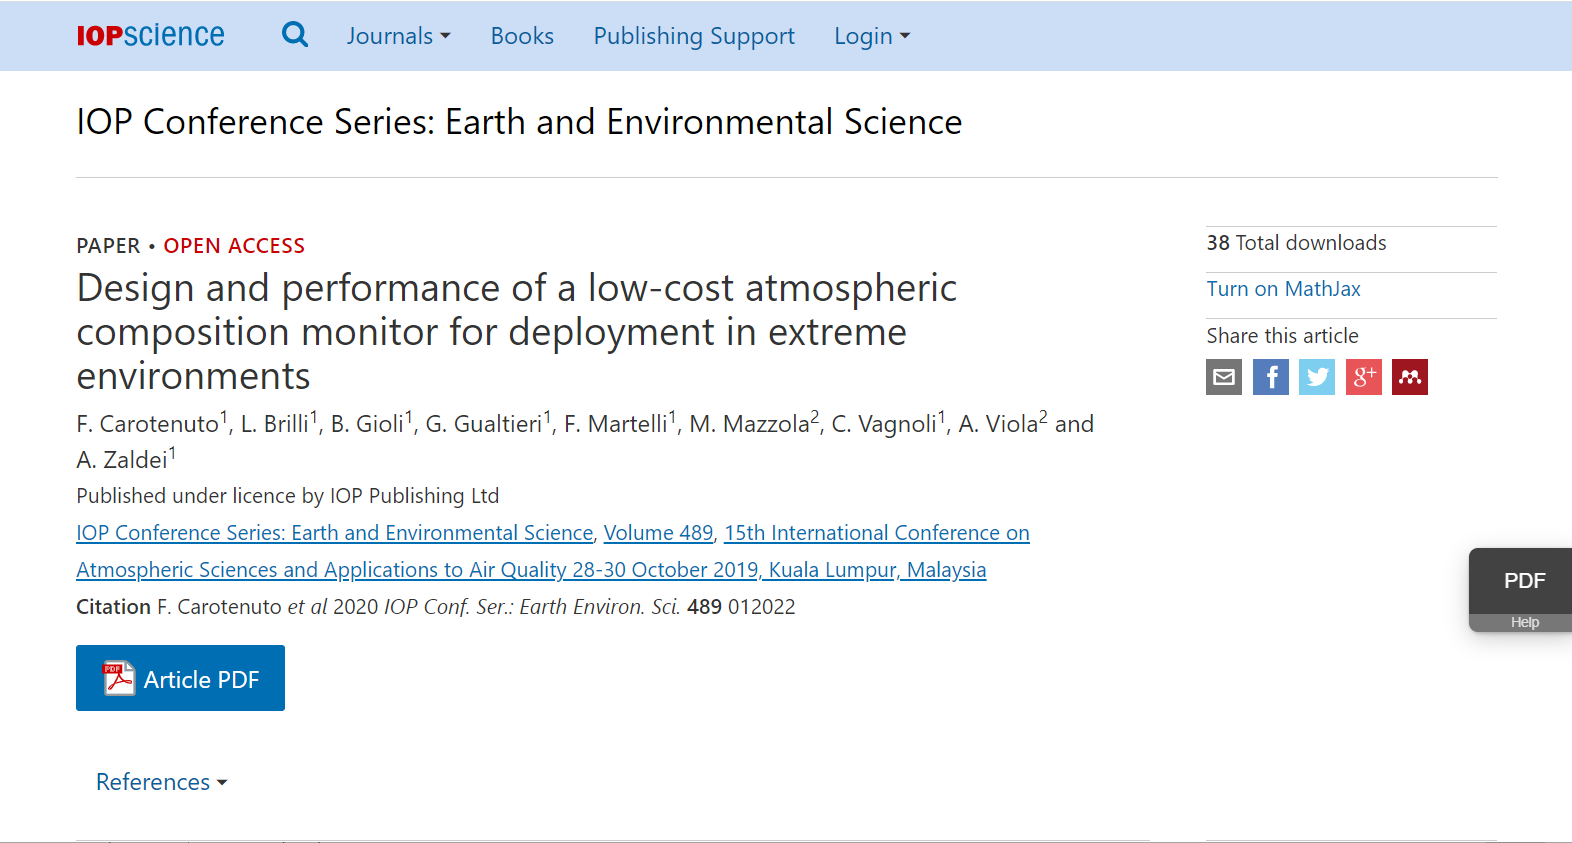 Design and Performance of a Low-Cost Atmospheric Composition Monitor for Deployment in Extreme Environments